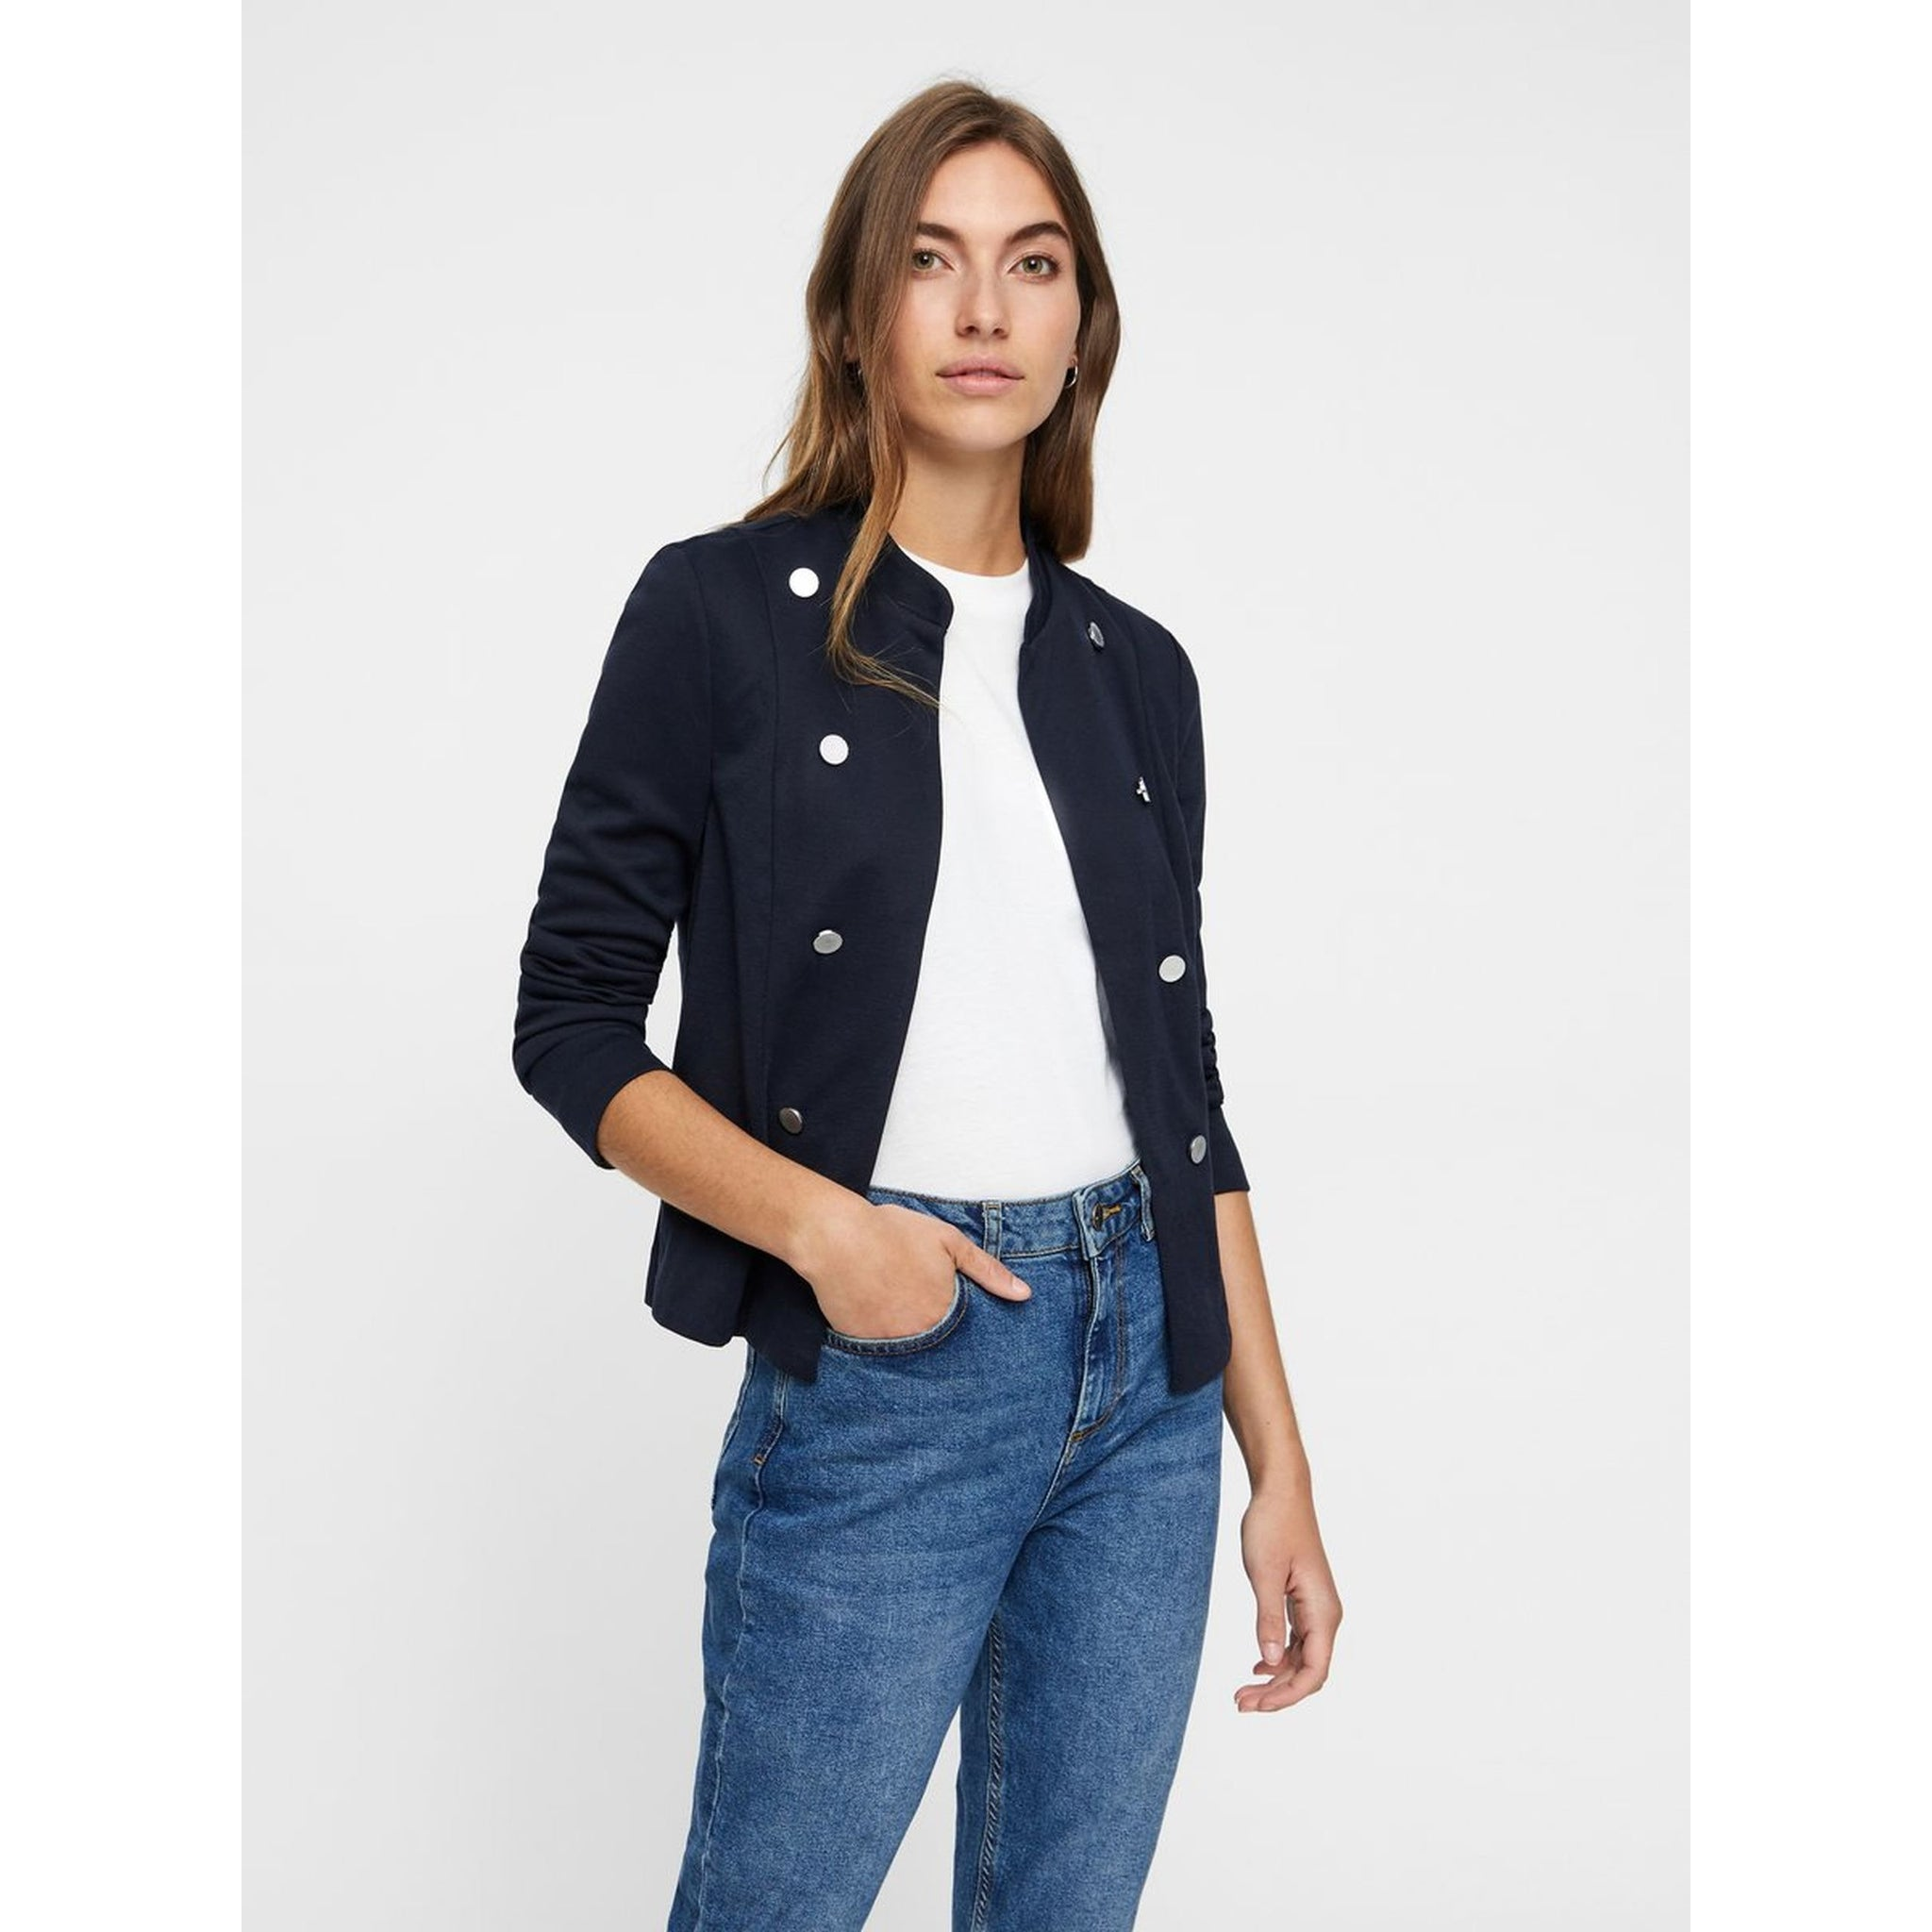 VERO MODA : Long Sleeved Blazer